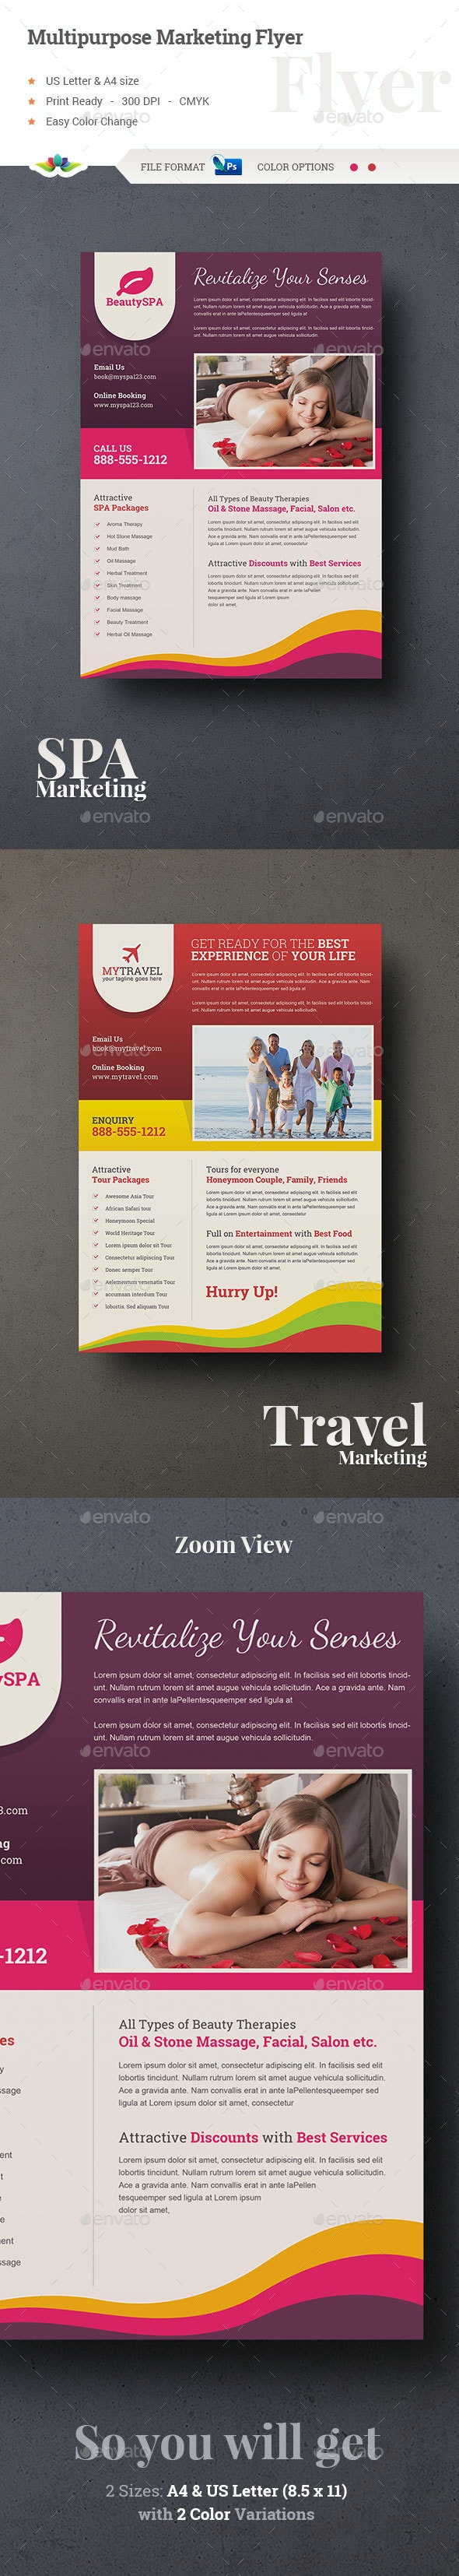 Multipurpose Marketing Flyer - Corporate Flyers